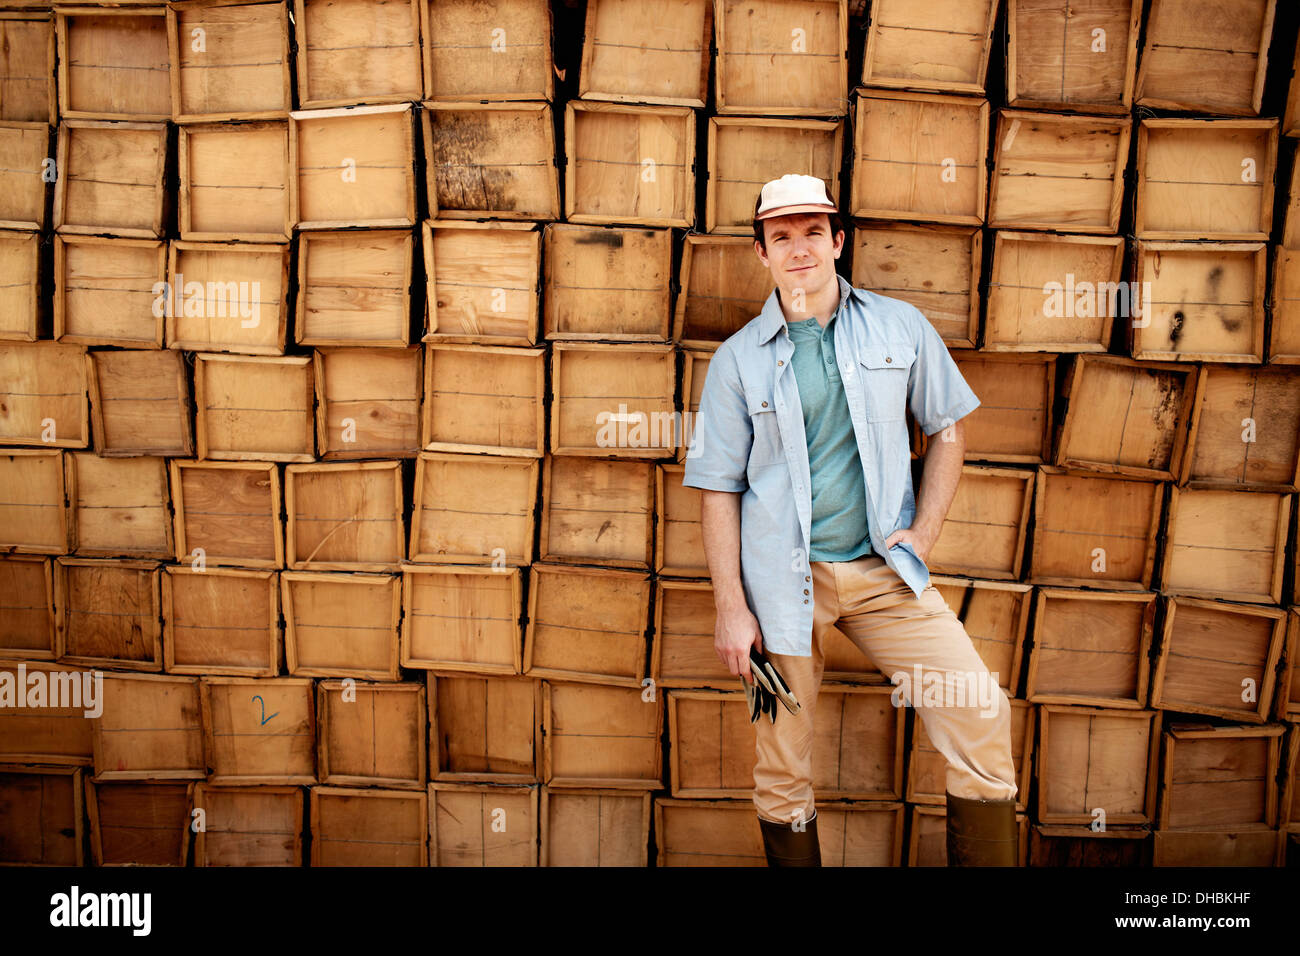 A farmer standing in front of a wall of stacked wooden crates for produce. - Stock Image